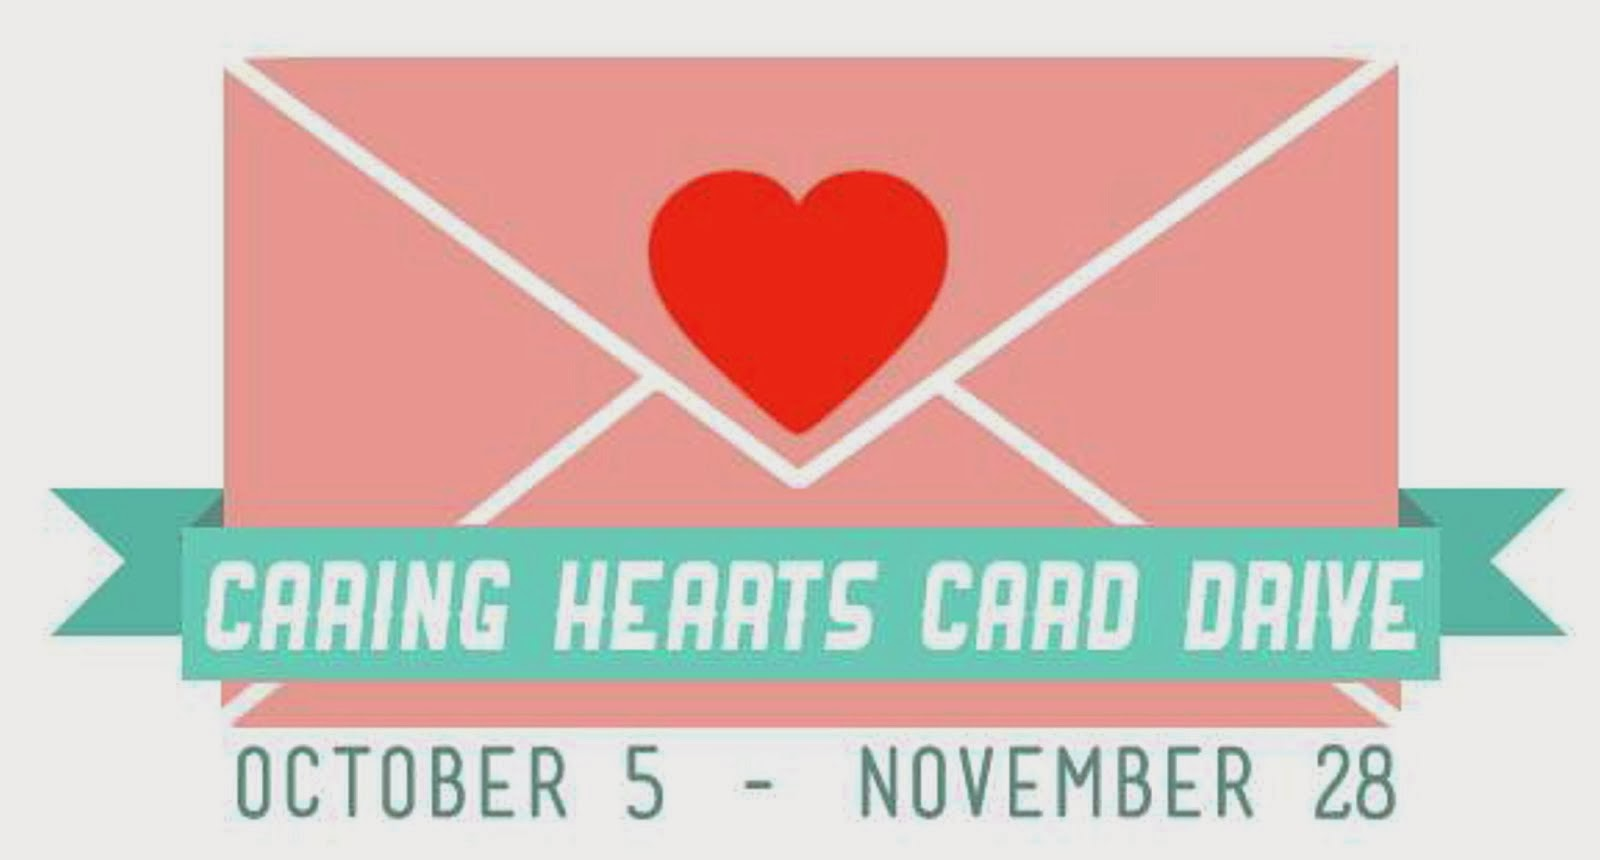 FOR CARING HEARTS CARD DRIVE CLICK HERE